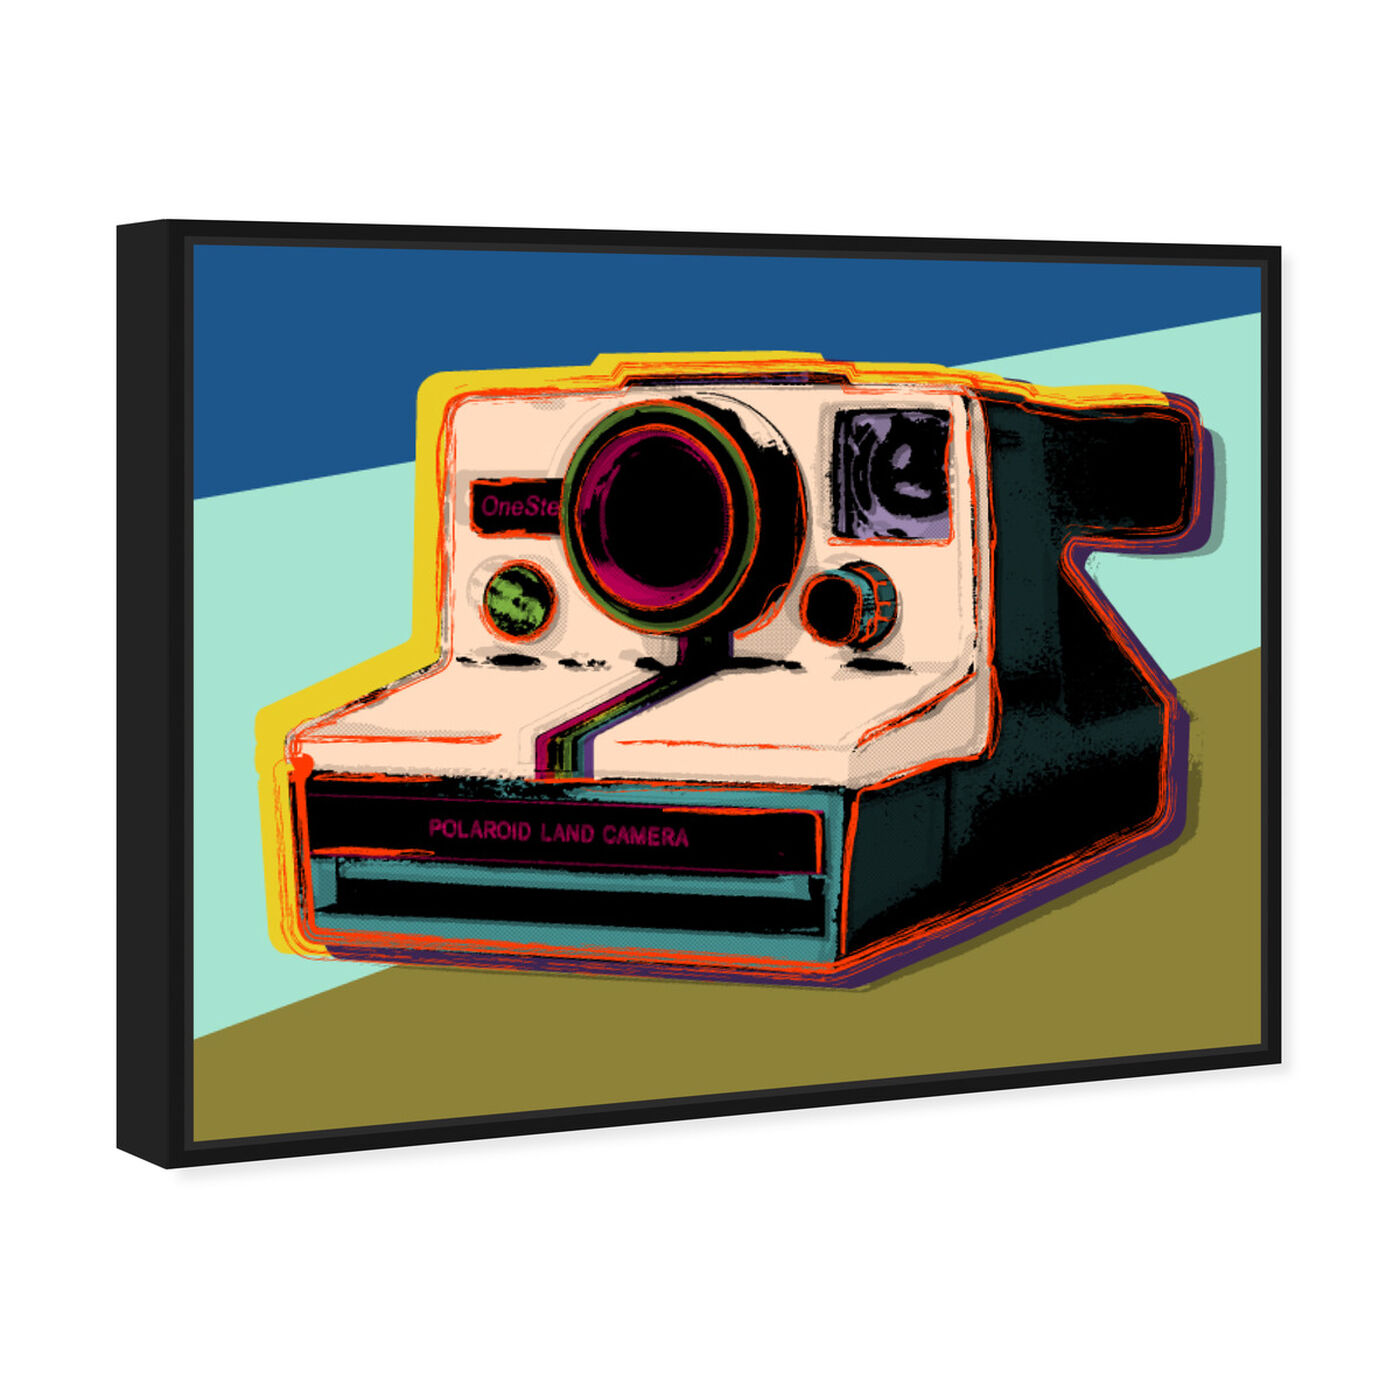 Angled view of Polaroid Visions featuring entertainment and hobbies and photography art.